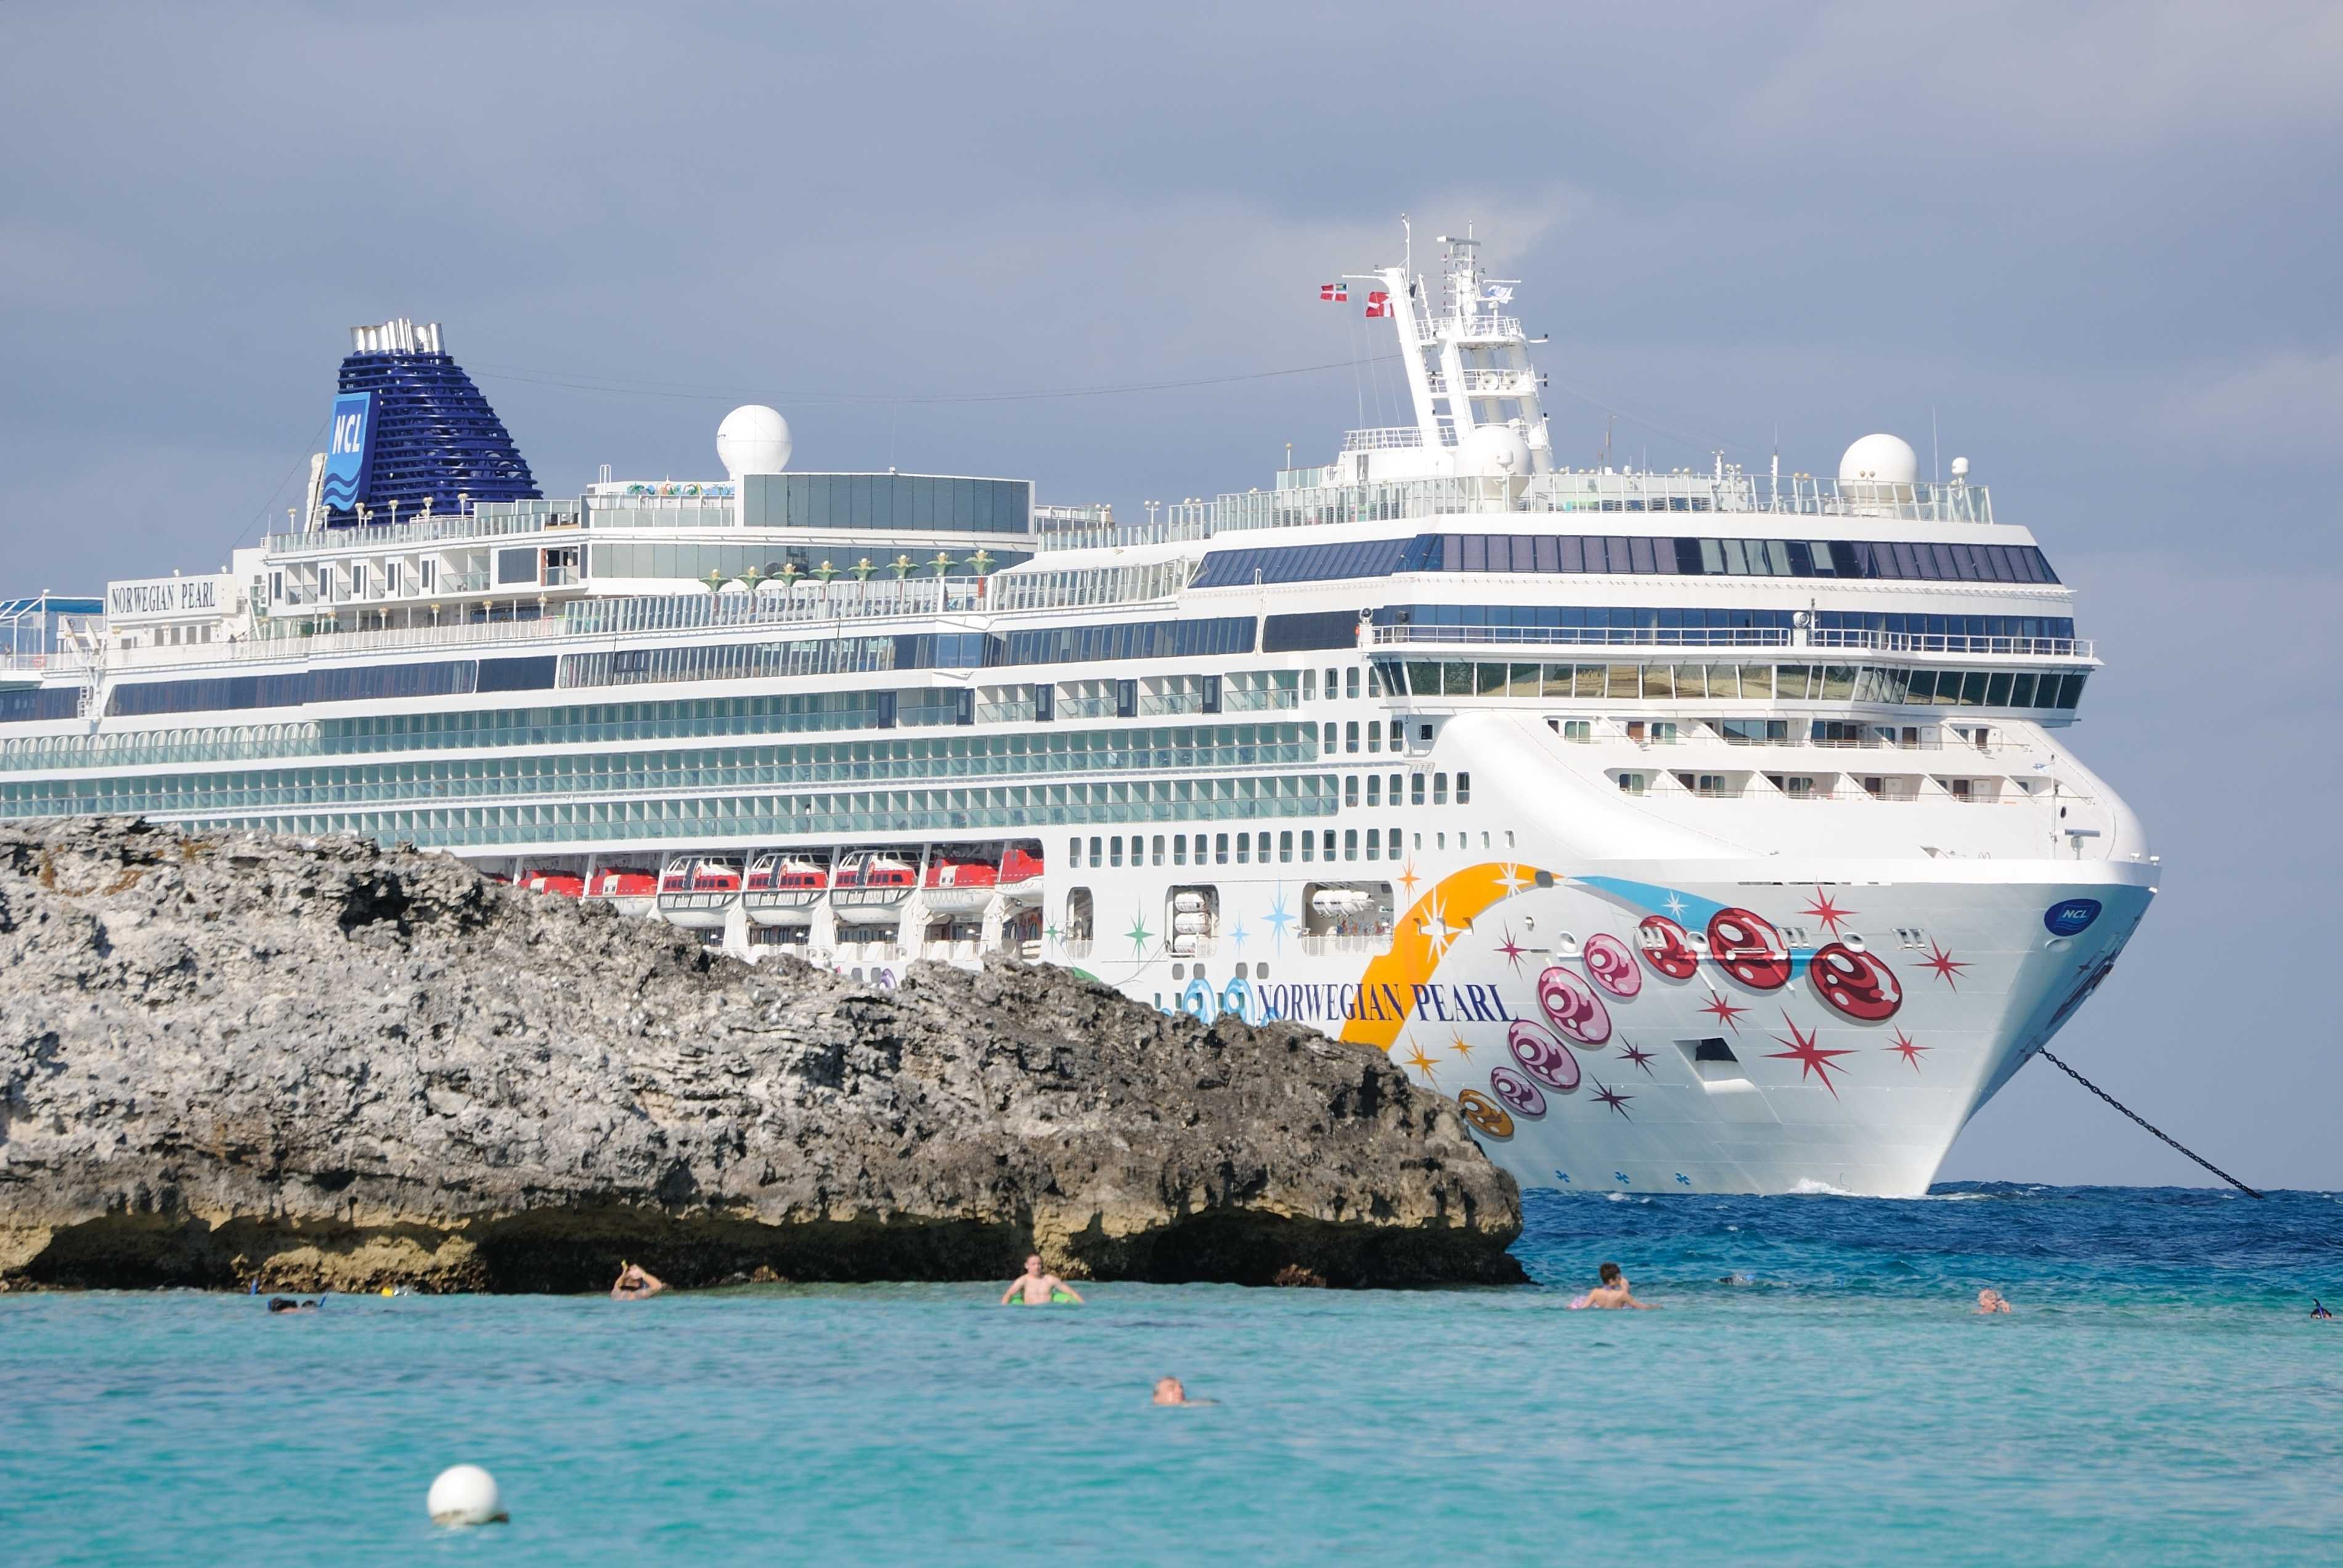 All Aboard: Cruise News for Week of August 10